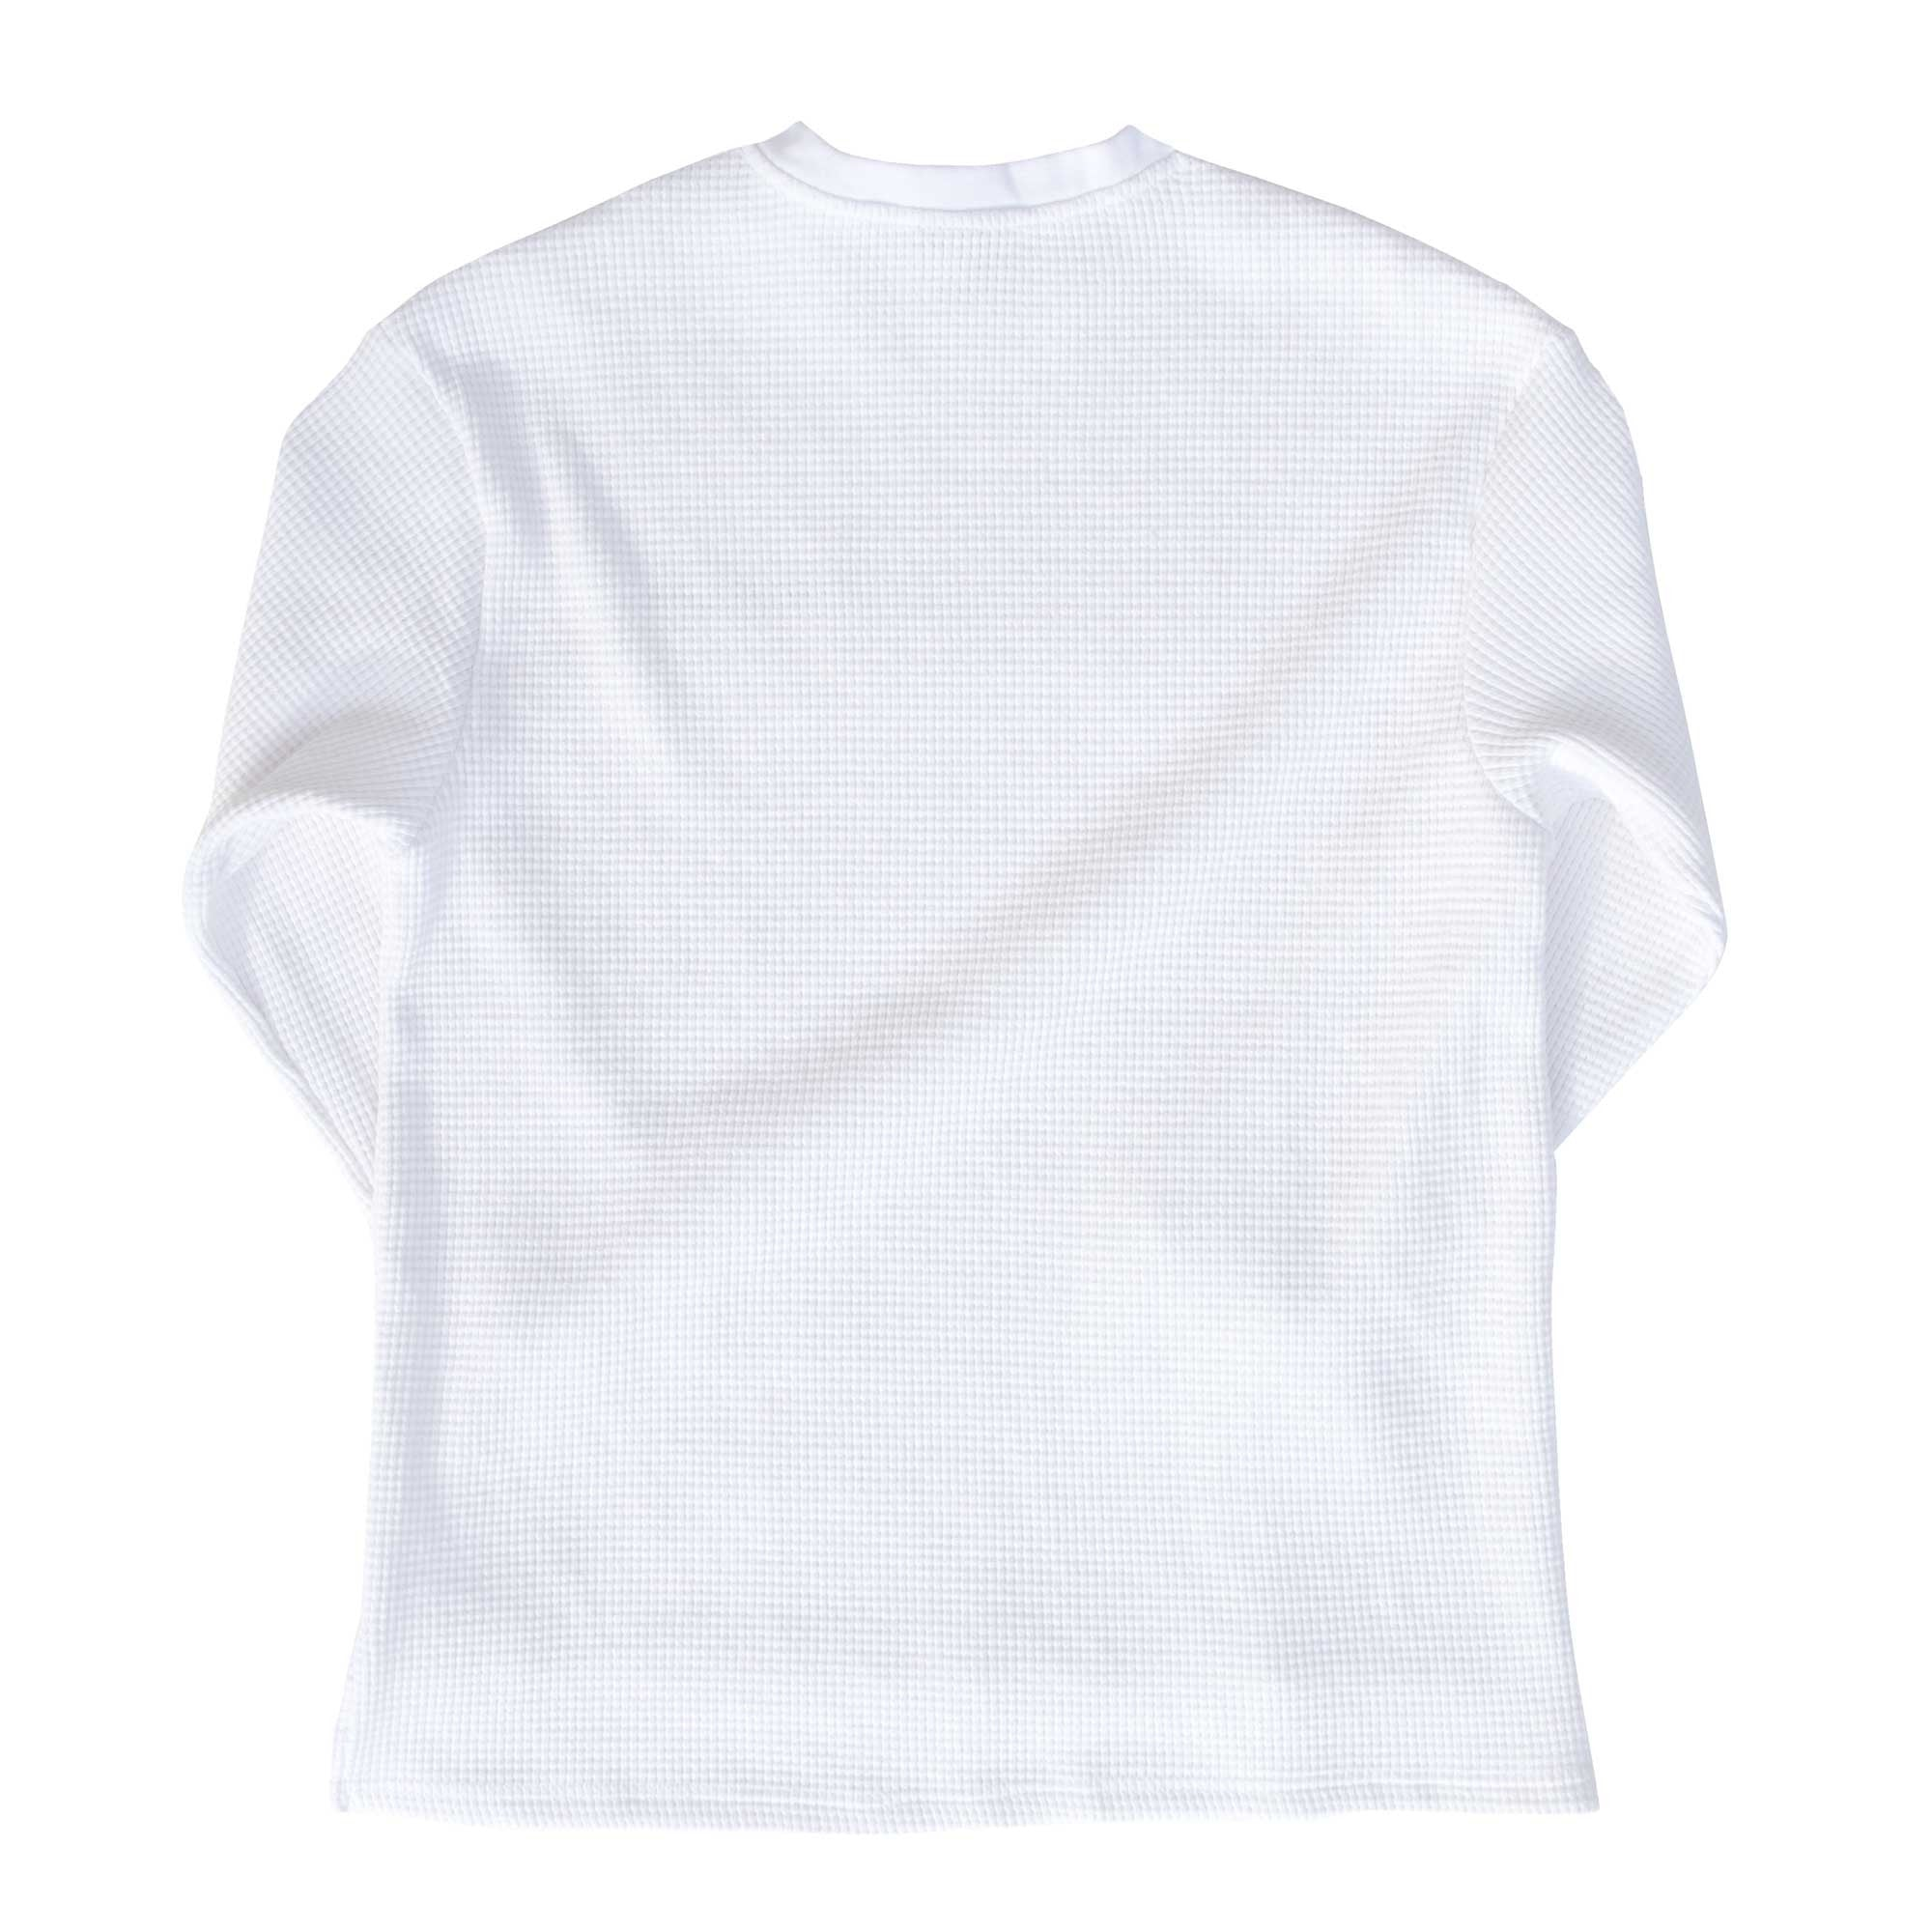 "Fool's Gold ""Spell Out"" Embroidered Thermal - White"